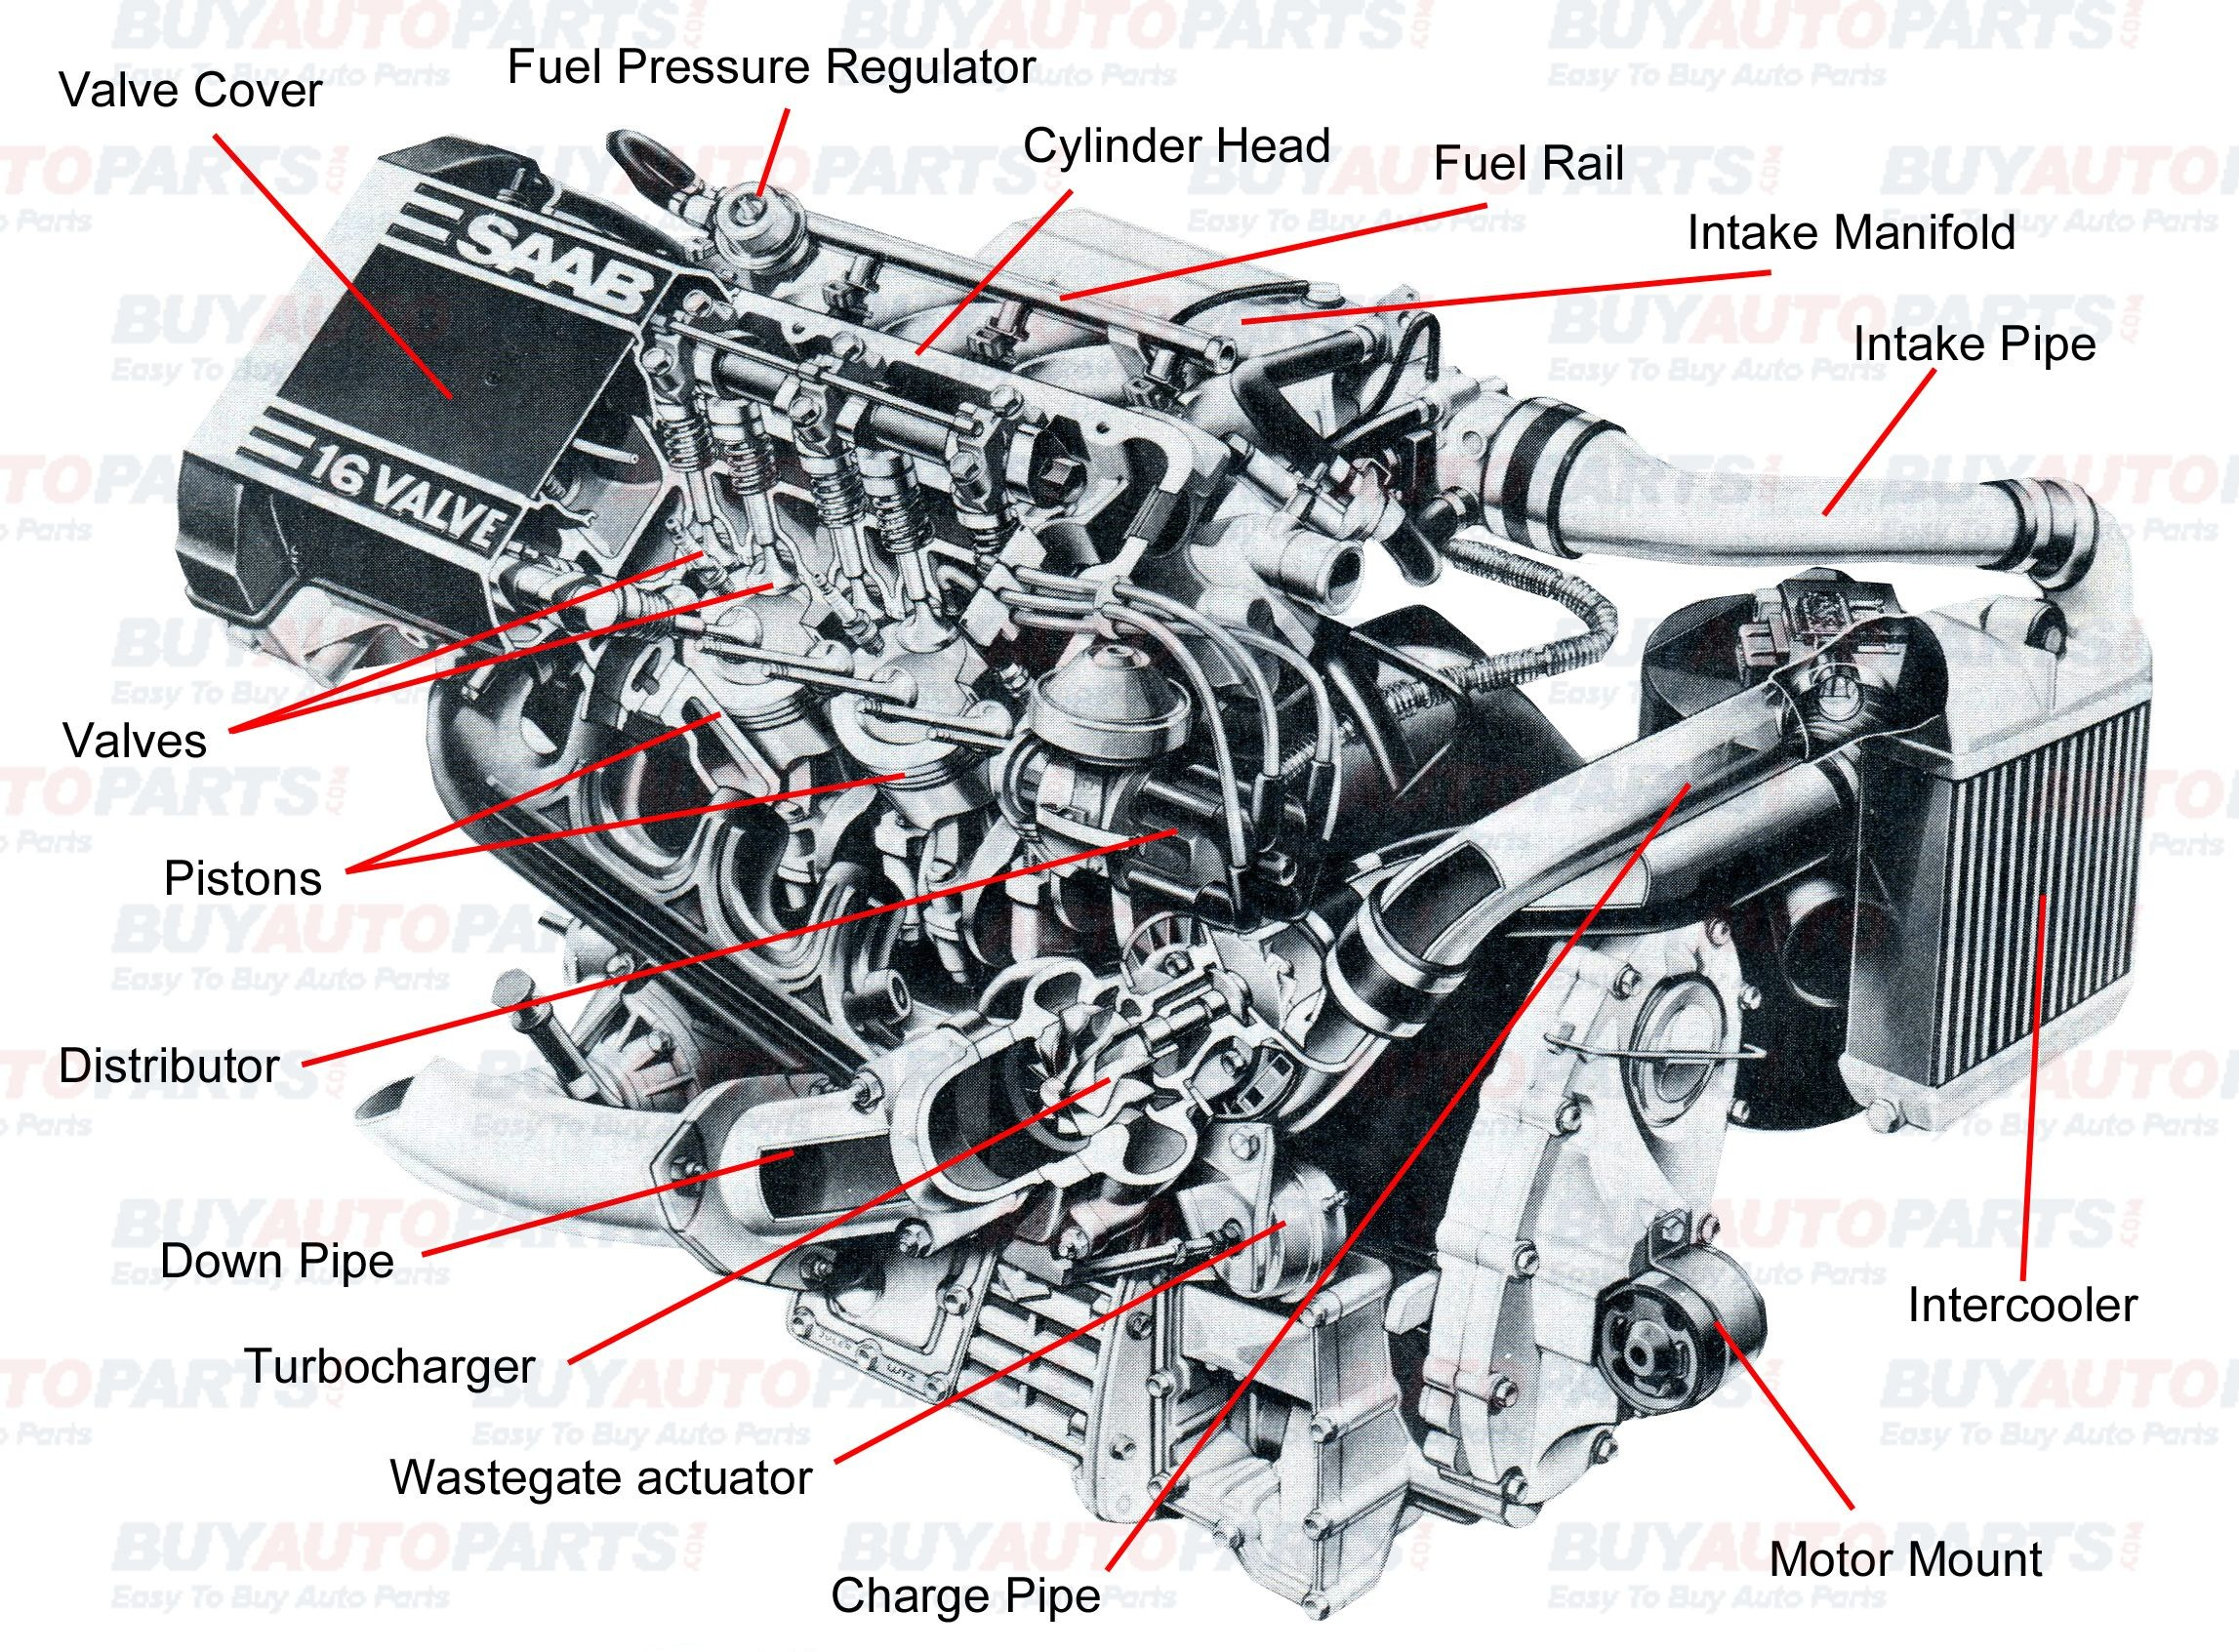 Diesel Engine Components Diagram All Internal Bustion Engines Have the Same  Basic Ponents the Of Diesel